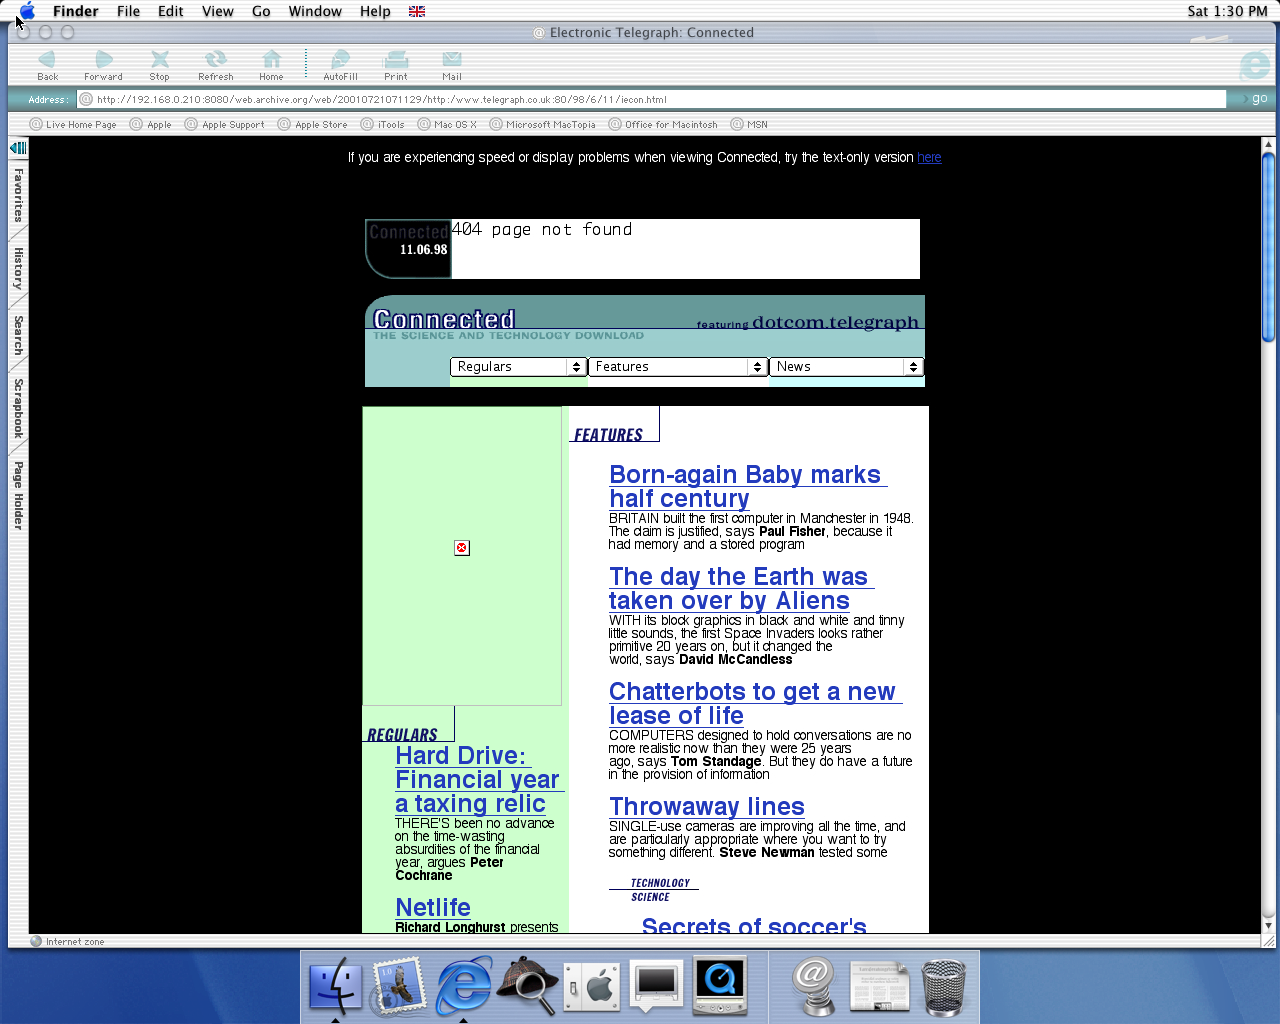 OS X 10.0 PPC with Microsoft Internet Explorer 5.1 for Mac Preview displaying a page from The Telegraph archived at July 21, 2001 at 07:11:29